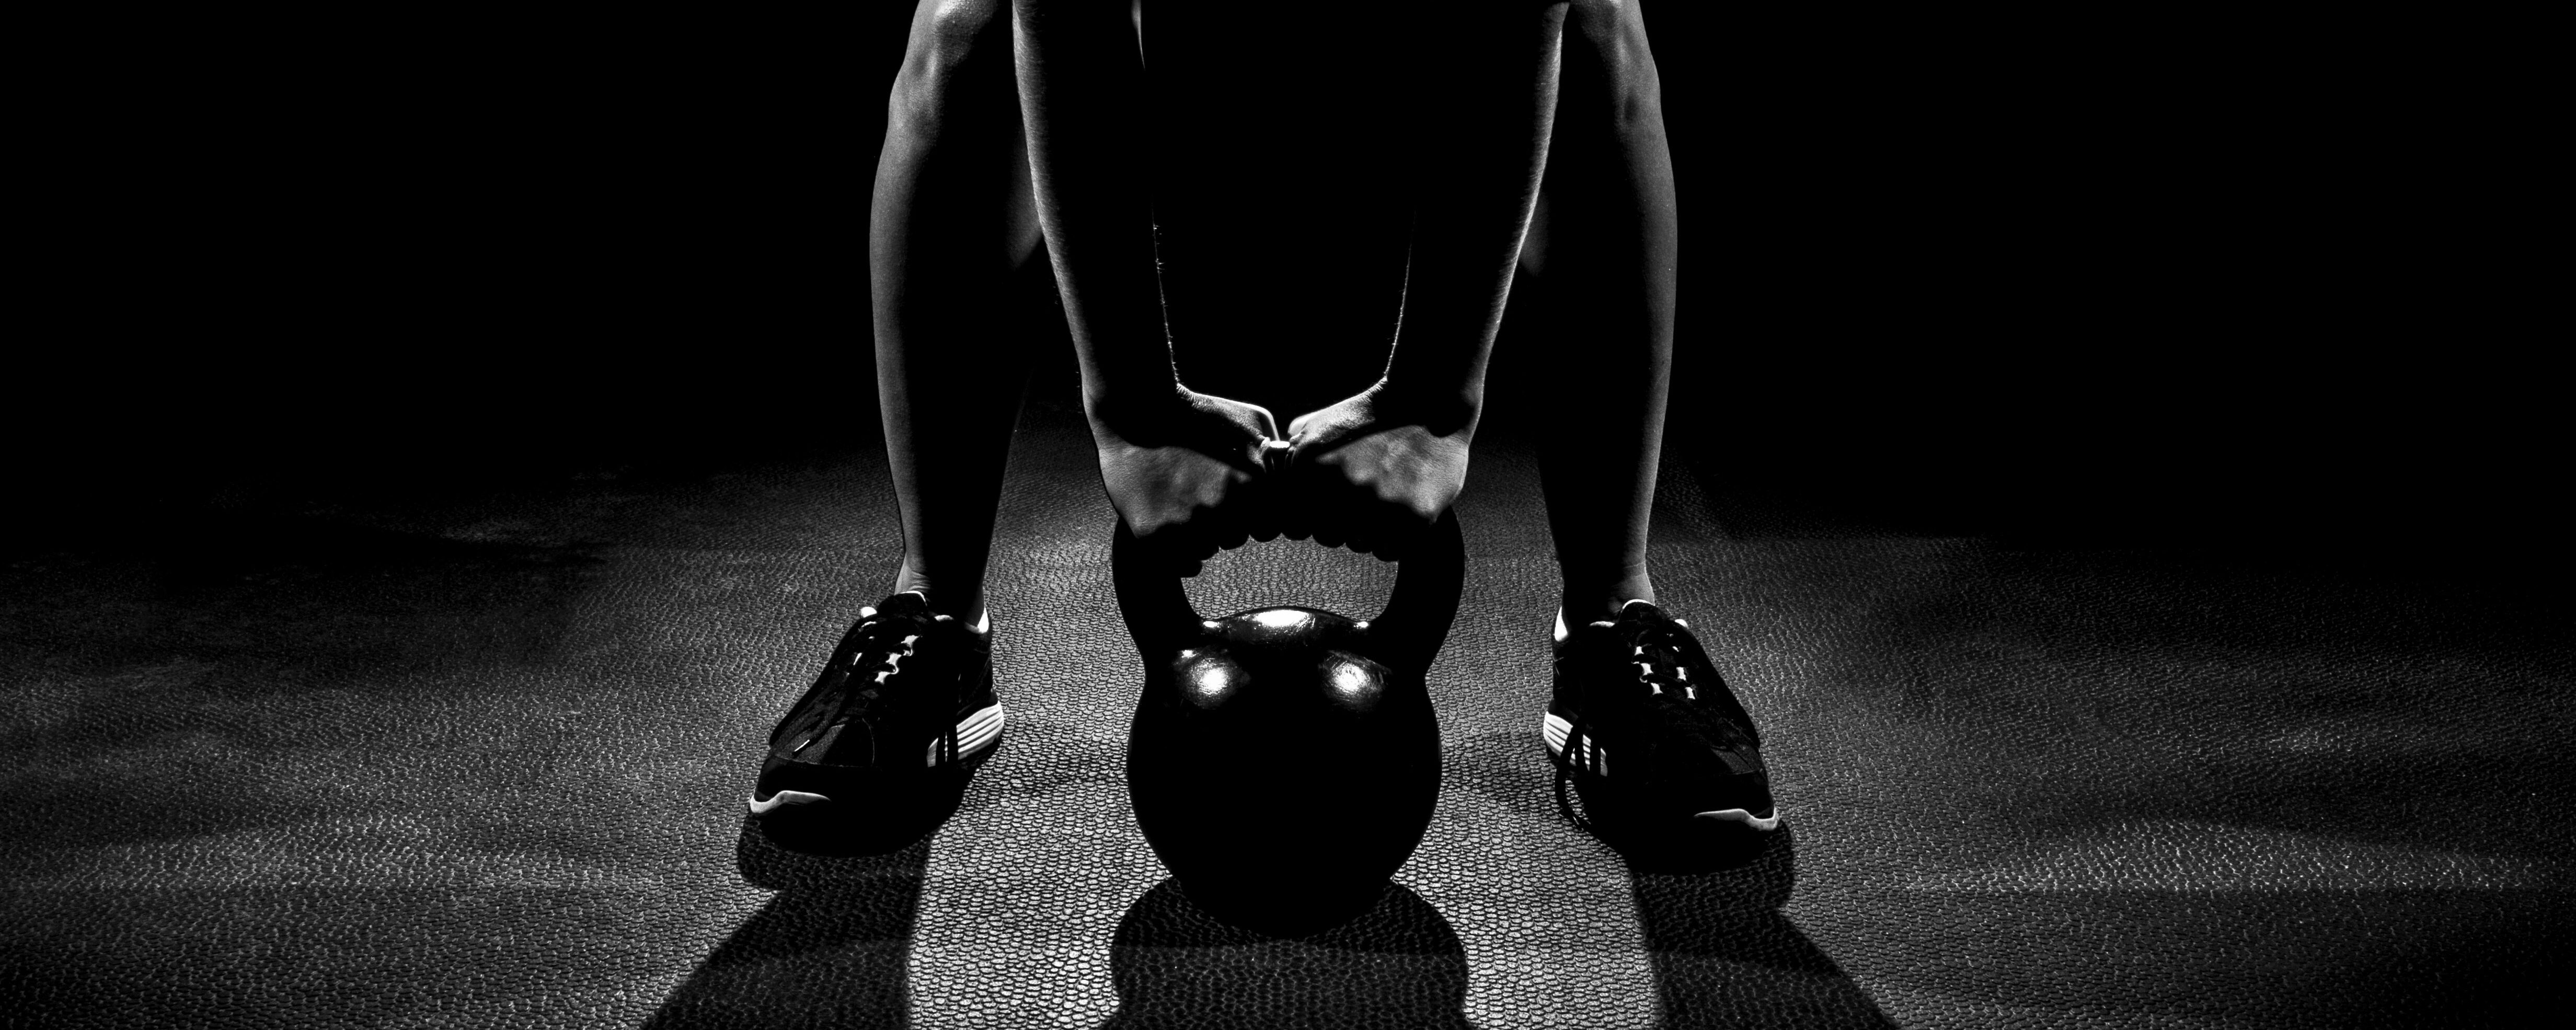 Kettlebells 101: The Kettlebell and Its Benefits